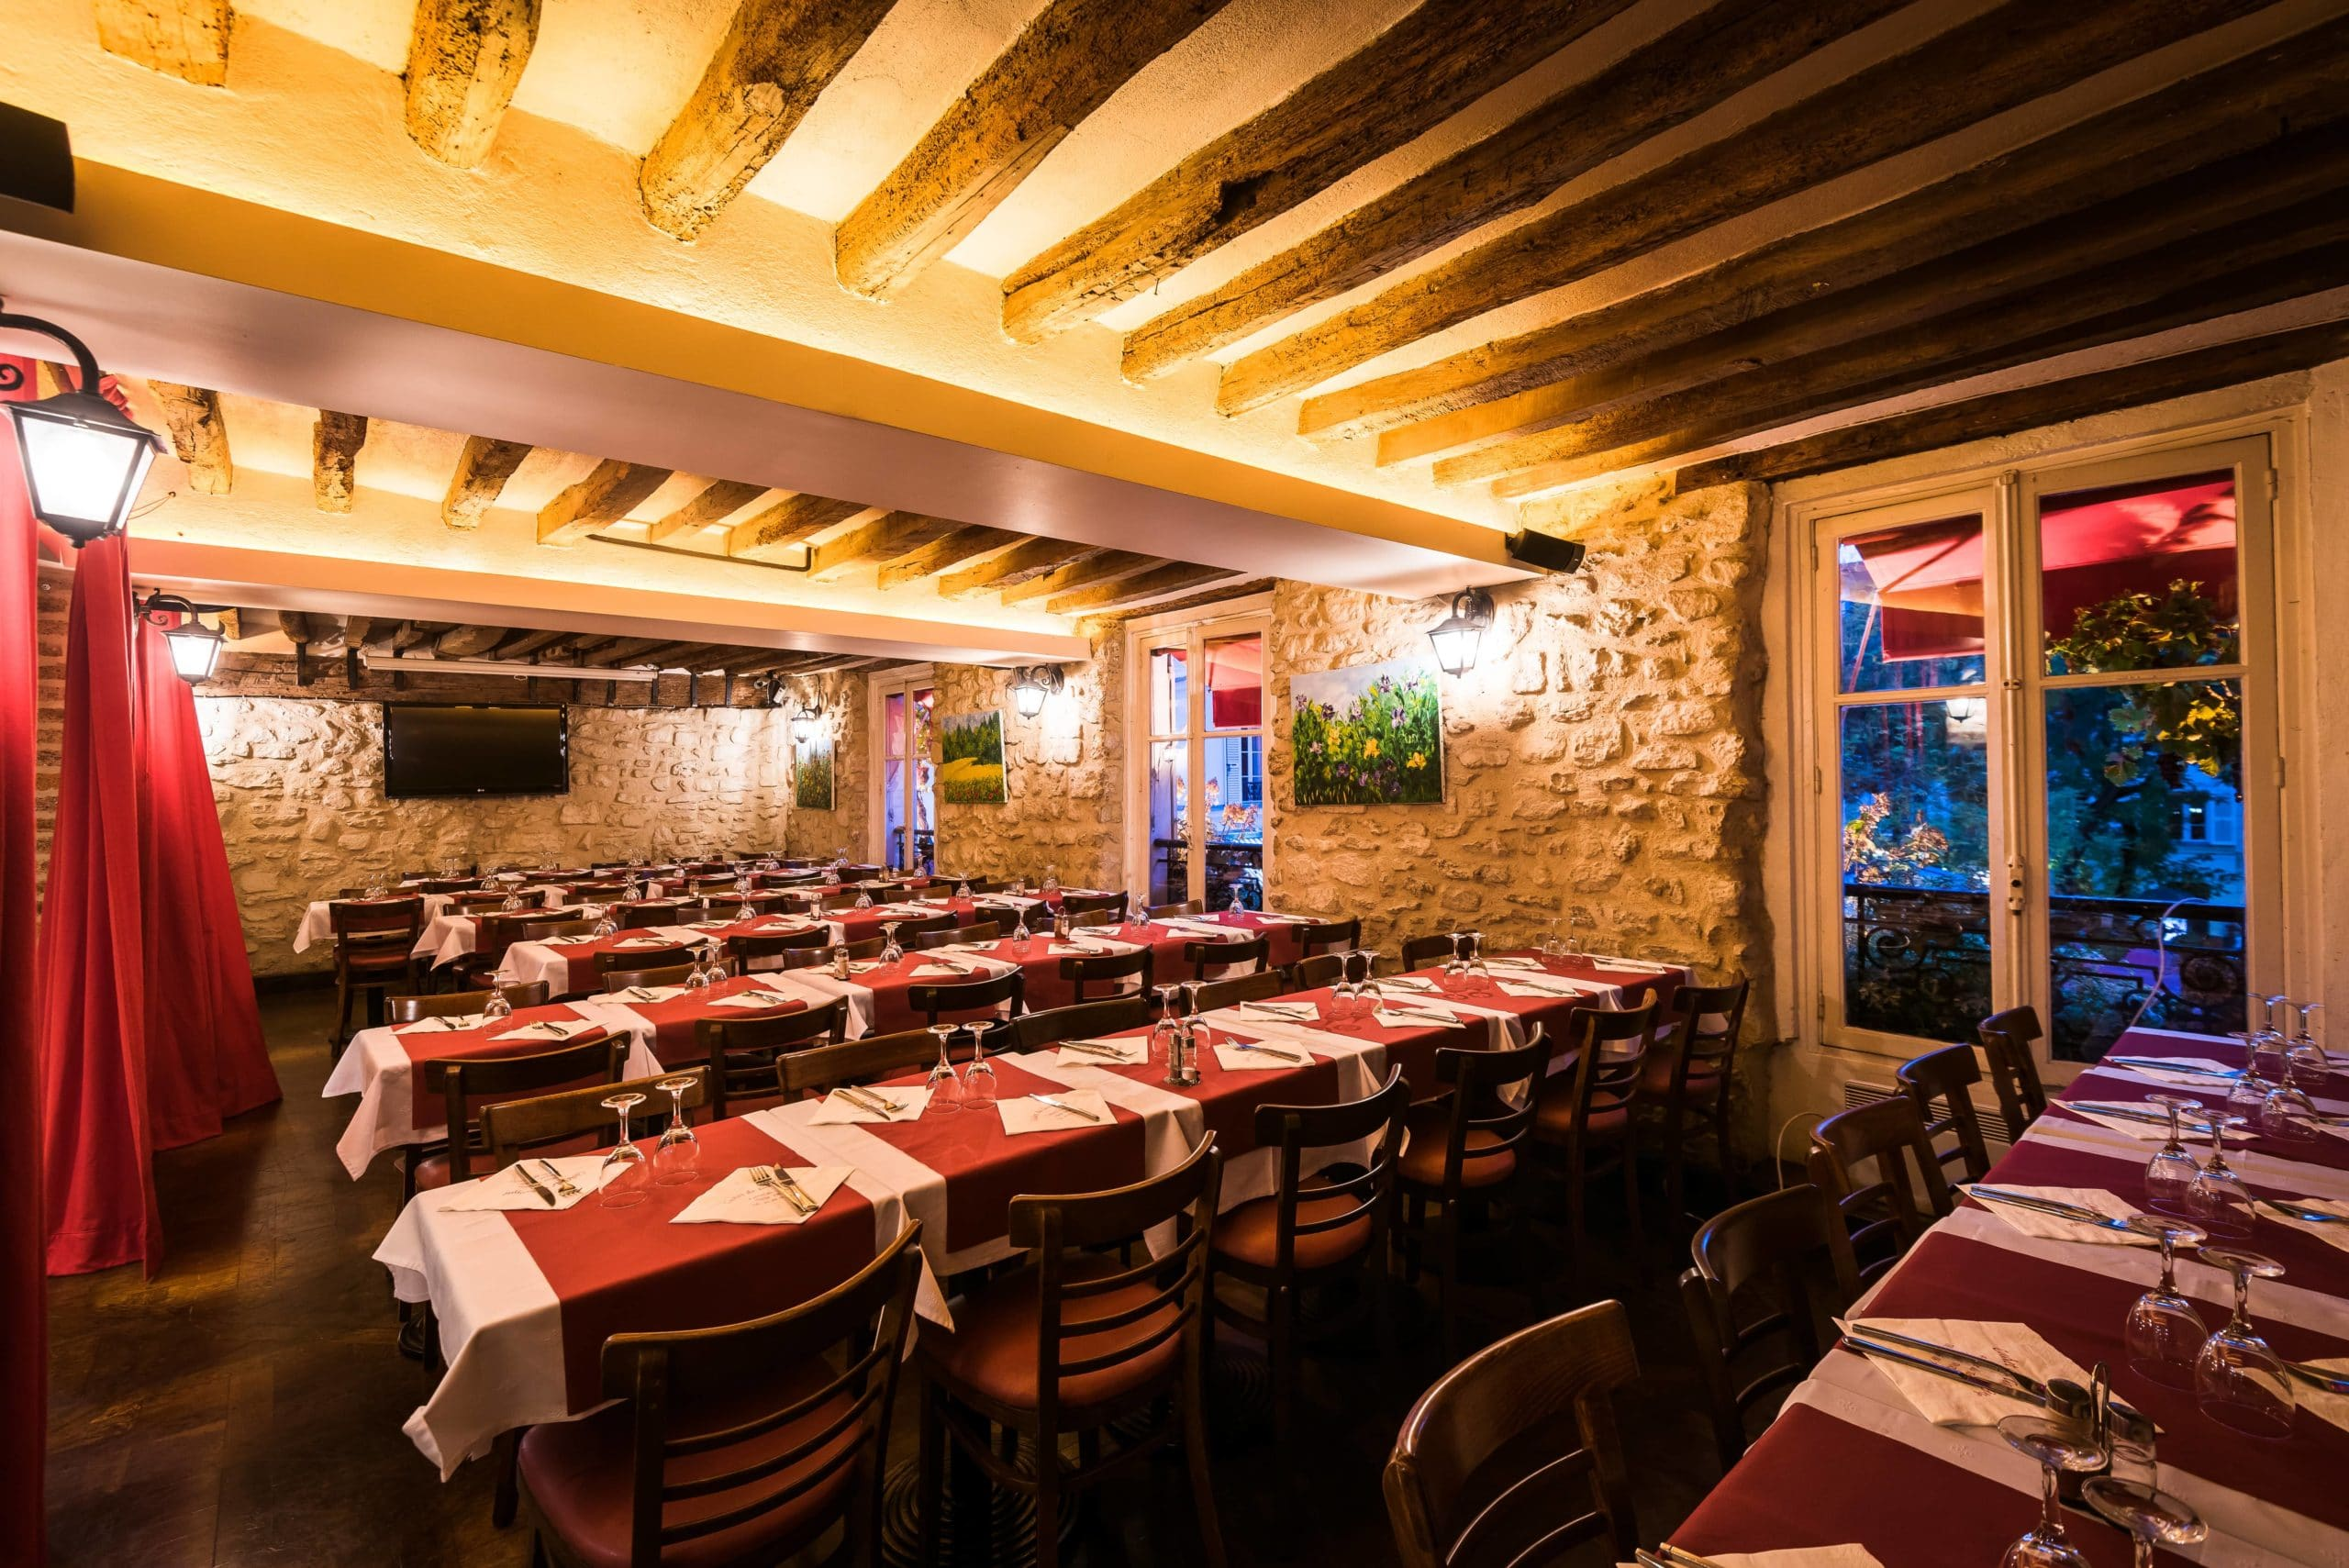 Restaurant Au Cadet de Gascogne private room to hire in Montmartre on first floor, by night